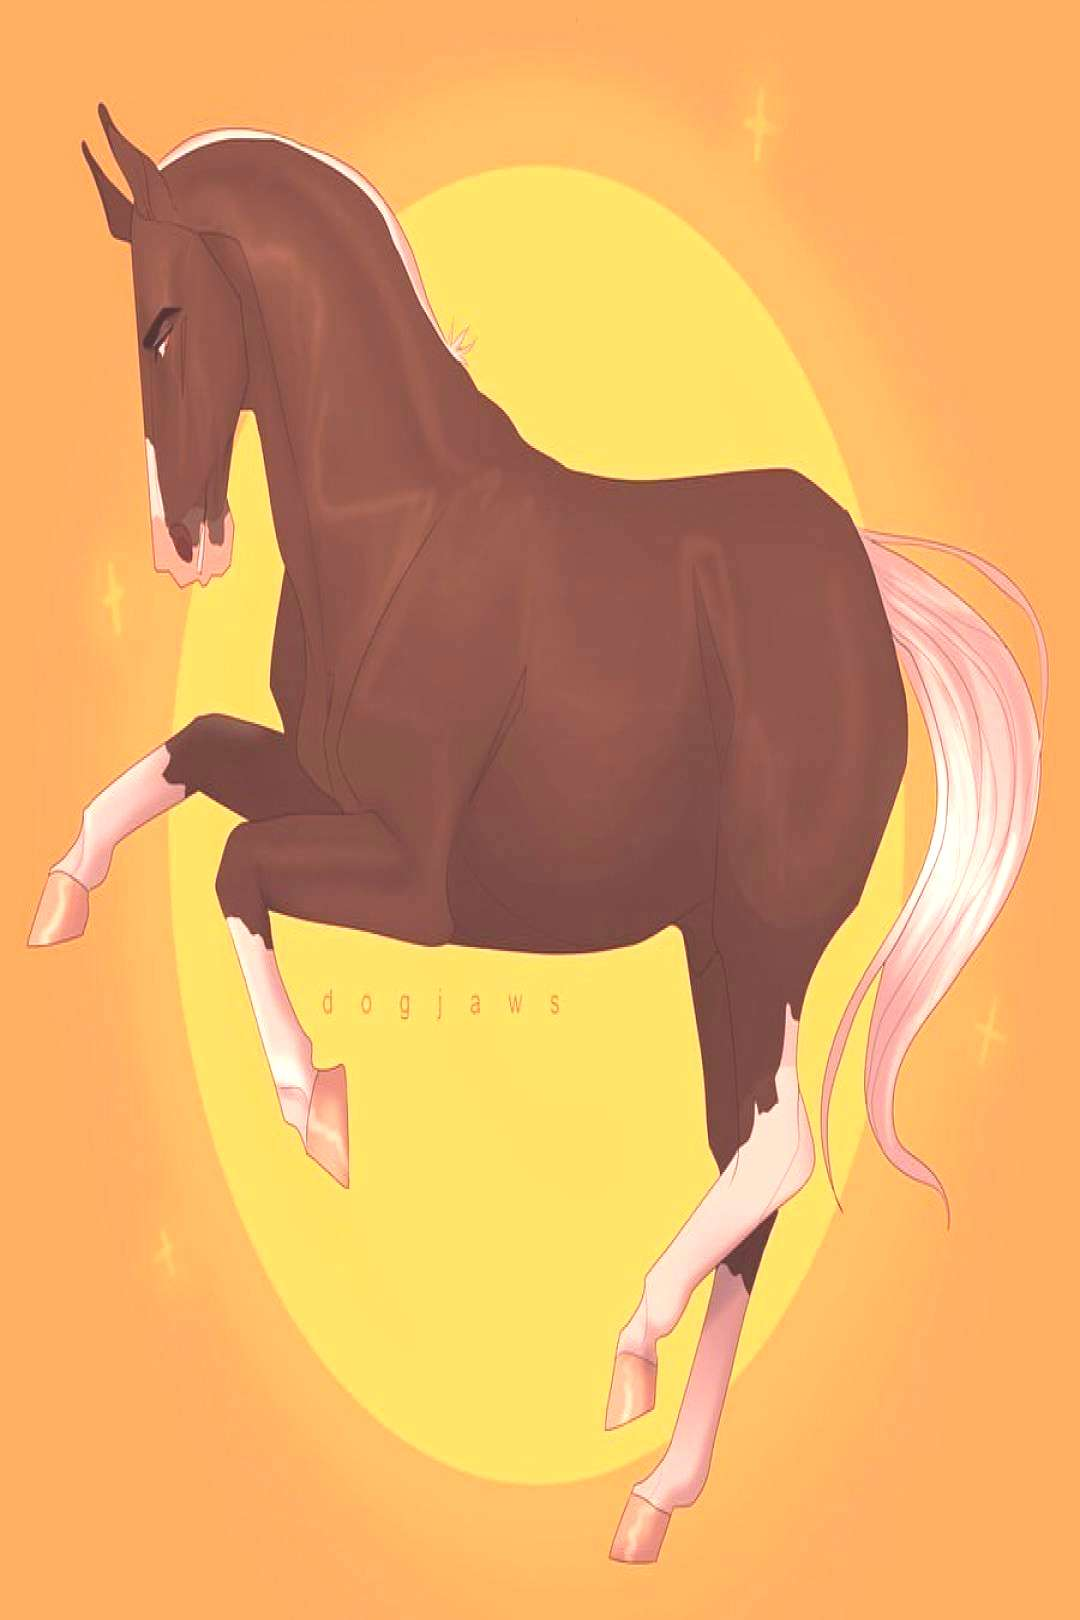 hunter 17 he him on March 16 2020You can find Pegasus and more on our nter 17 he him on March 16 20